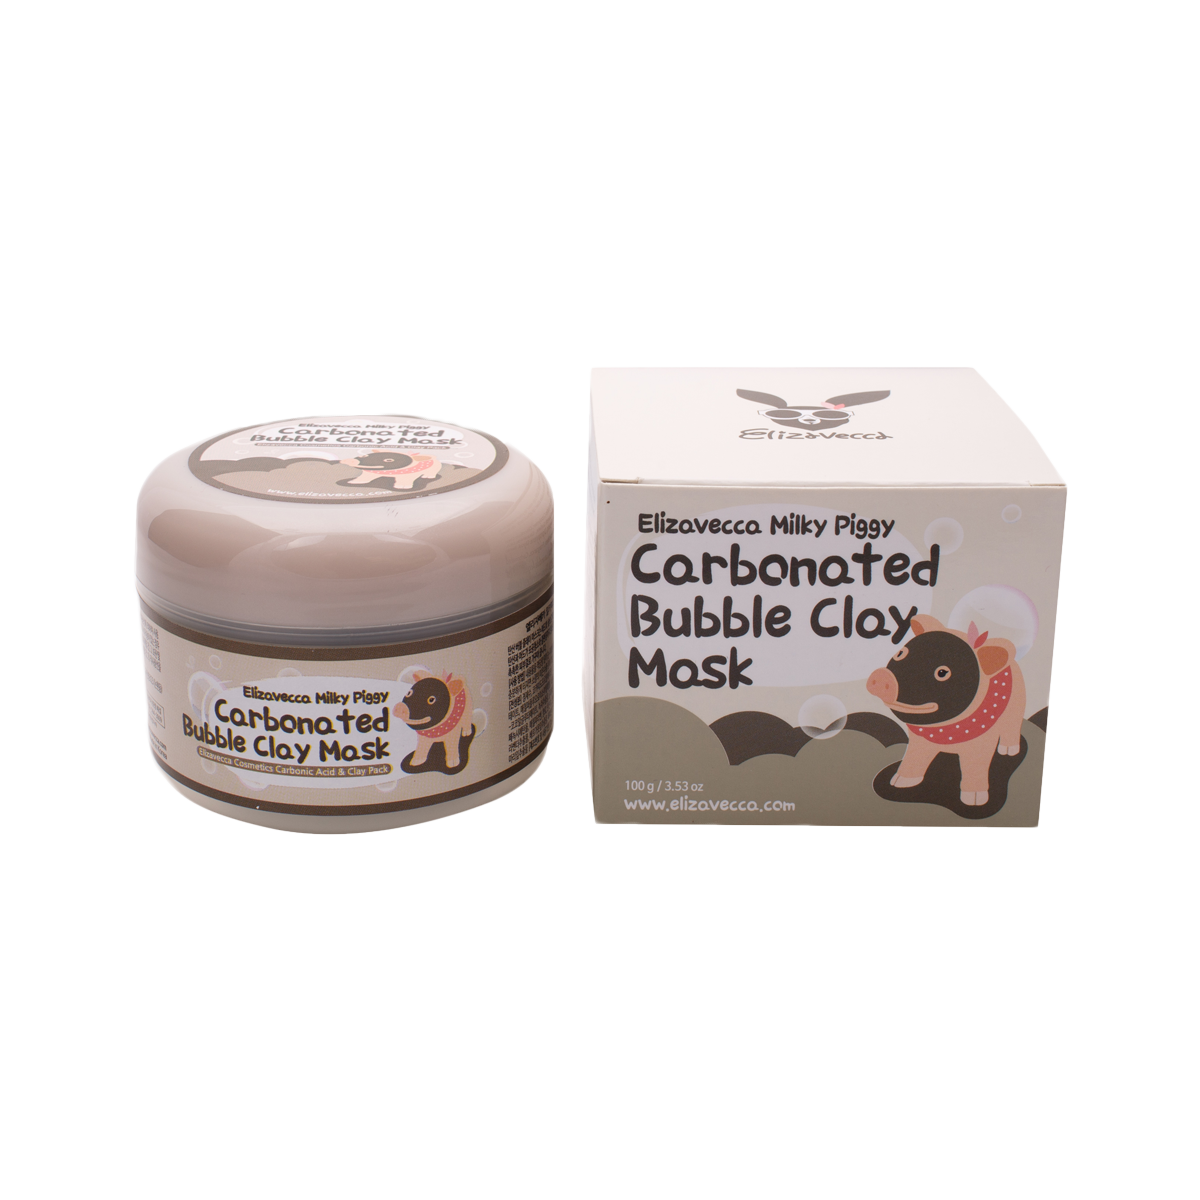 Кремовые Пузырьковая глиняная маска Milky Piggy Carbonated Bubble Clay Mask, 100 мл import_files_a9_a9af66c5481811e680fcd43d7eeceb89_c9c310f1322211e980eb00155d005a0e.png